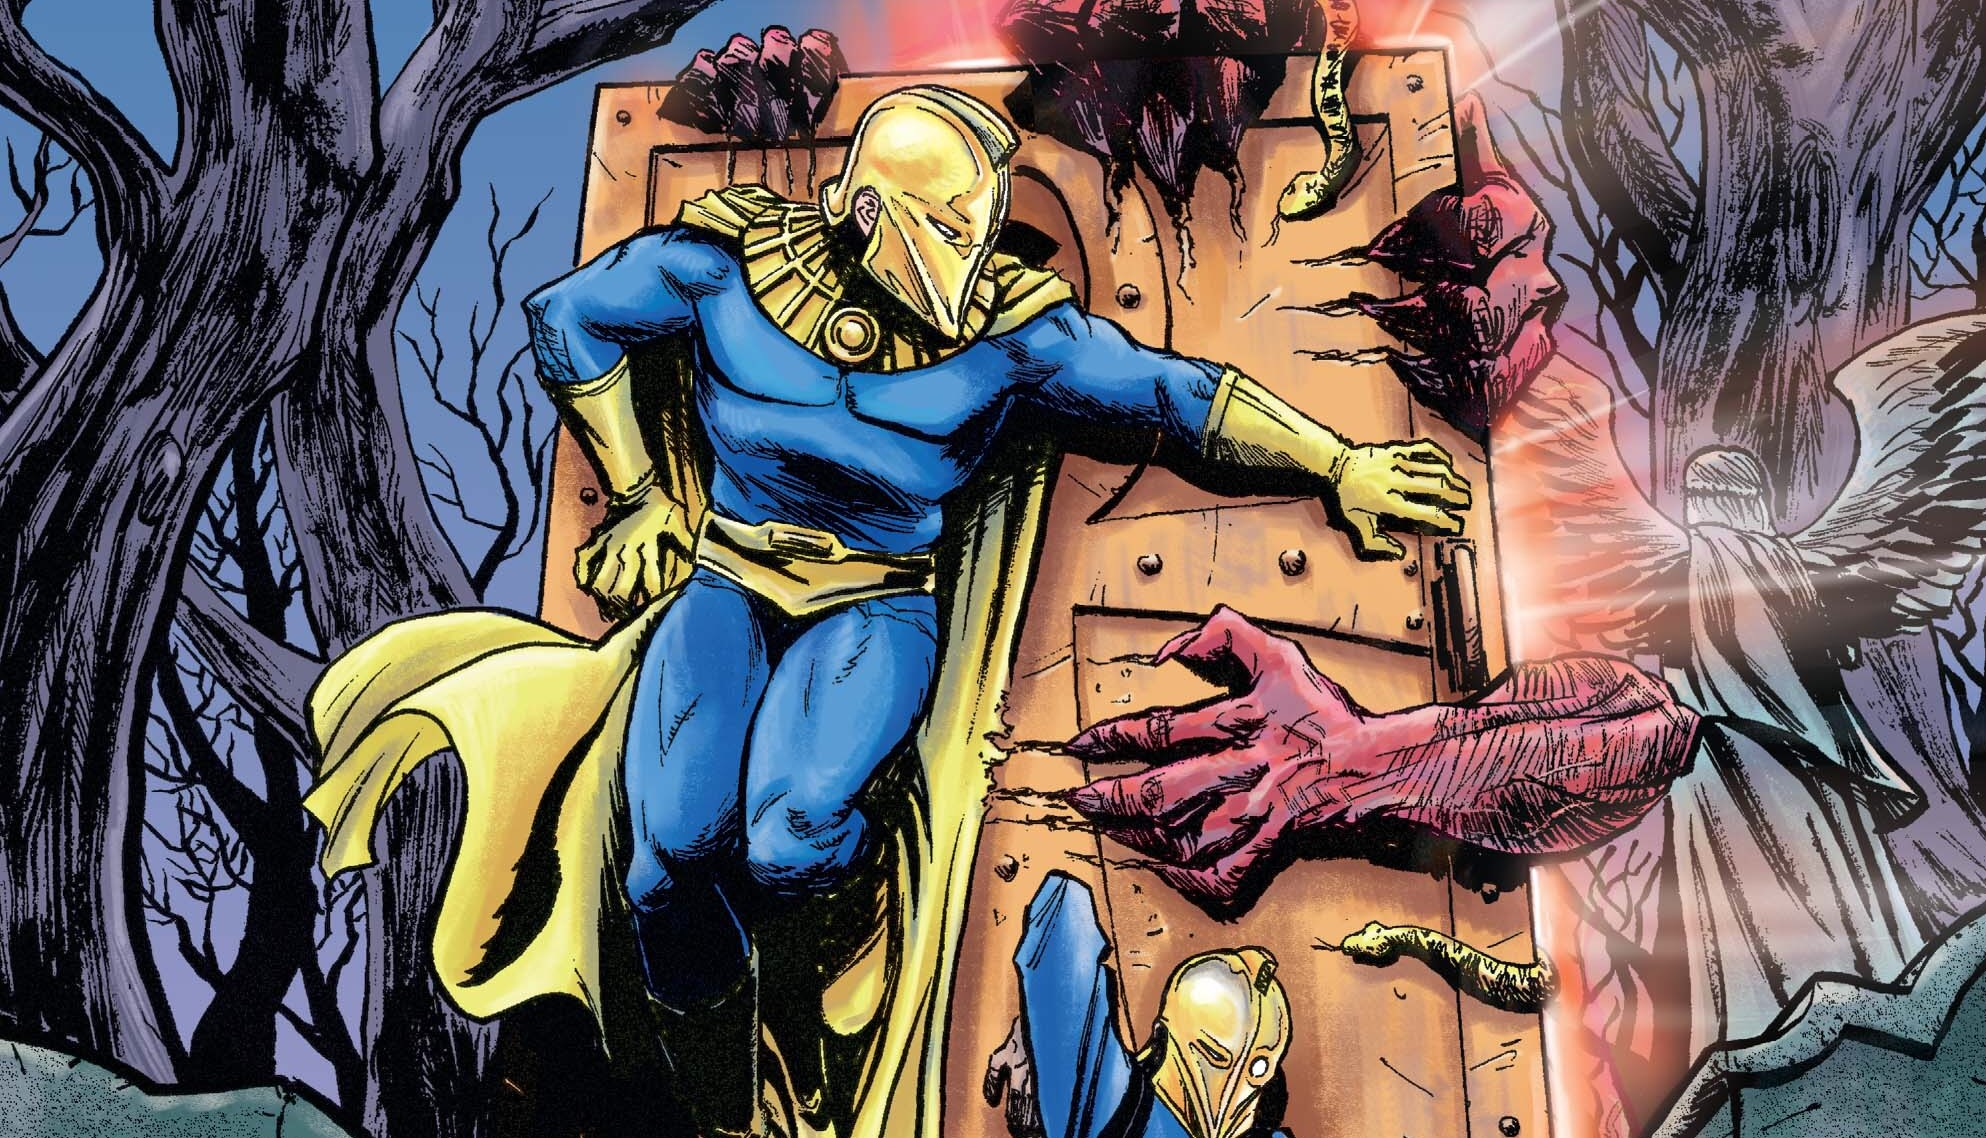 [EXCLUSIVE] DC Preview: Doctor Fate #14